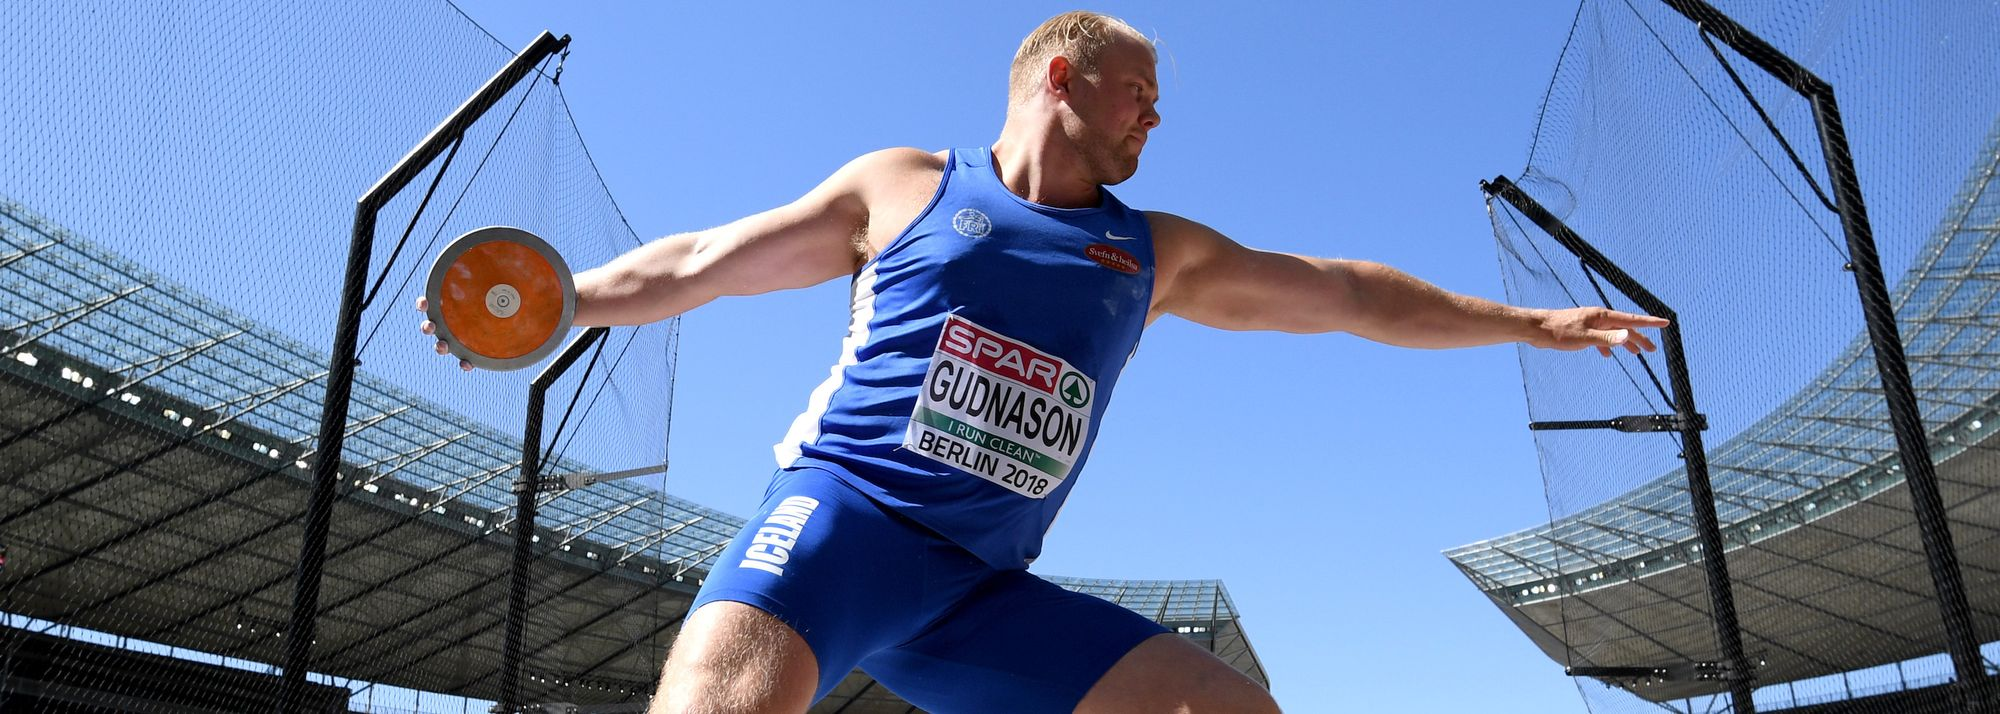 In 2019 the rising Icelandic star finished last at the World Championships. After a breakthrough throw last year, he enters 2021 as one of the best discus throwers in the world.